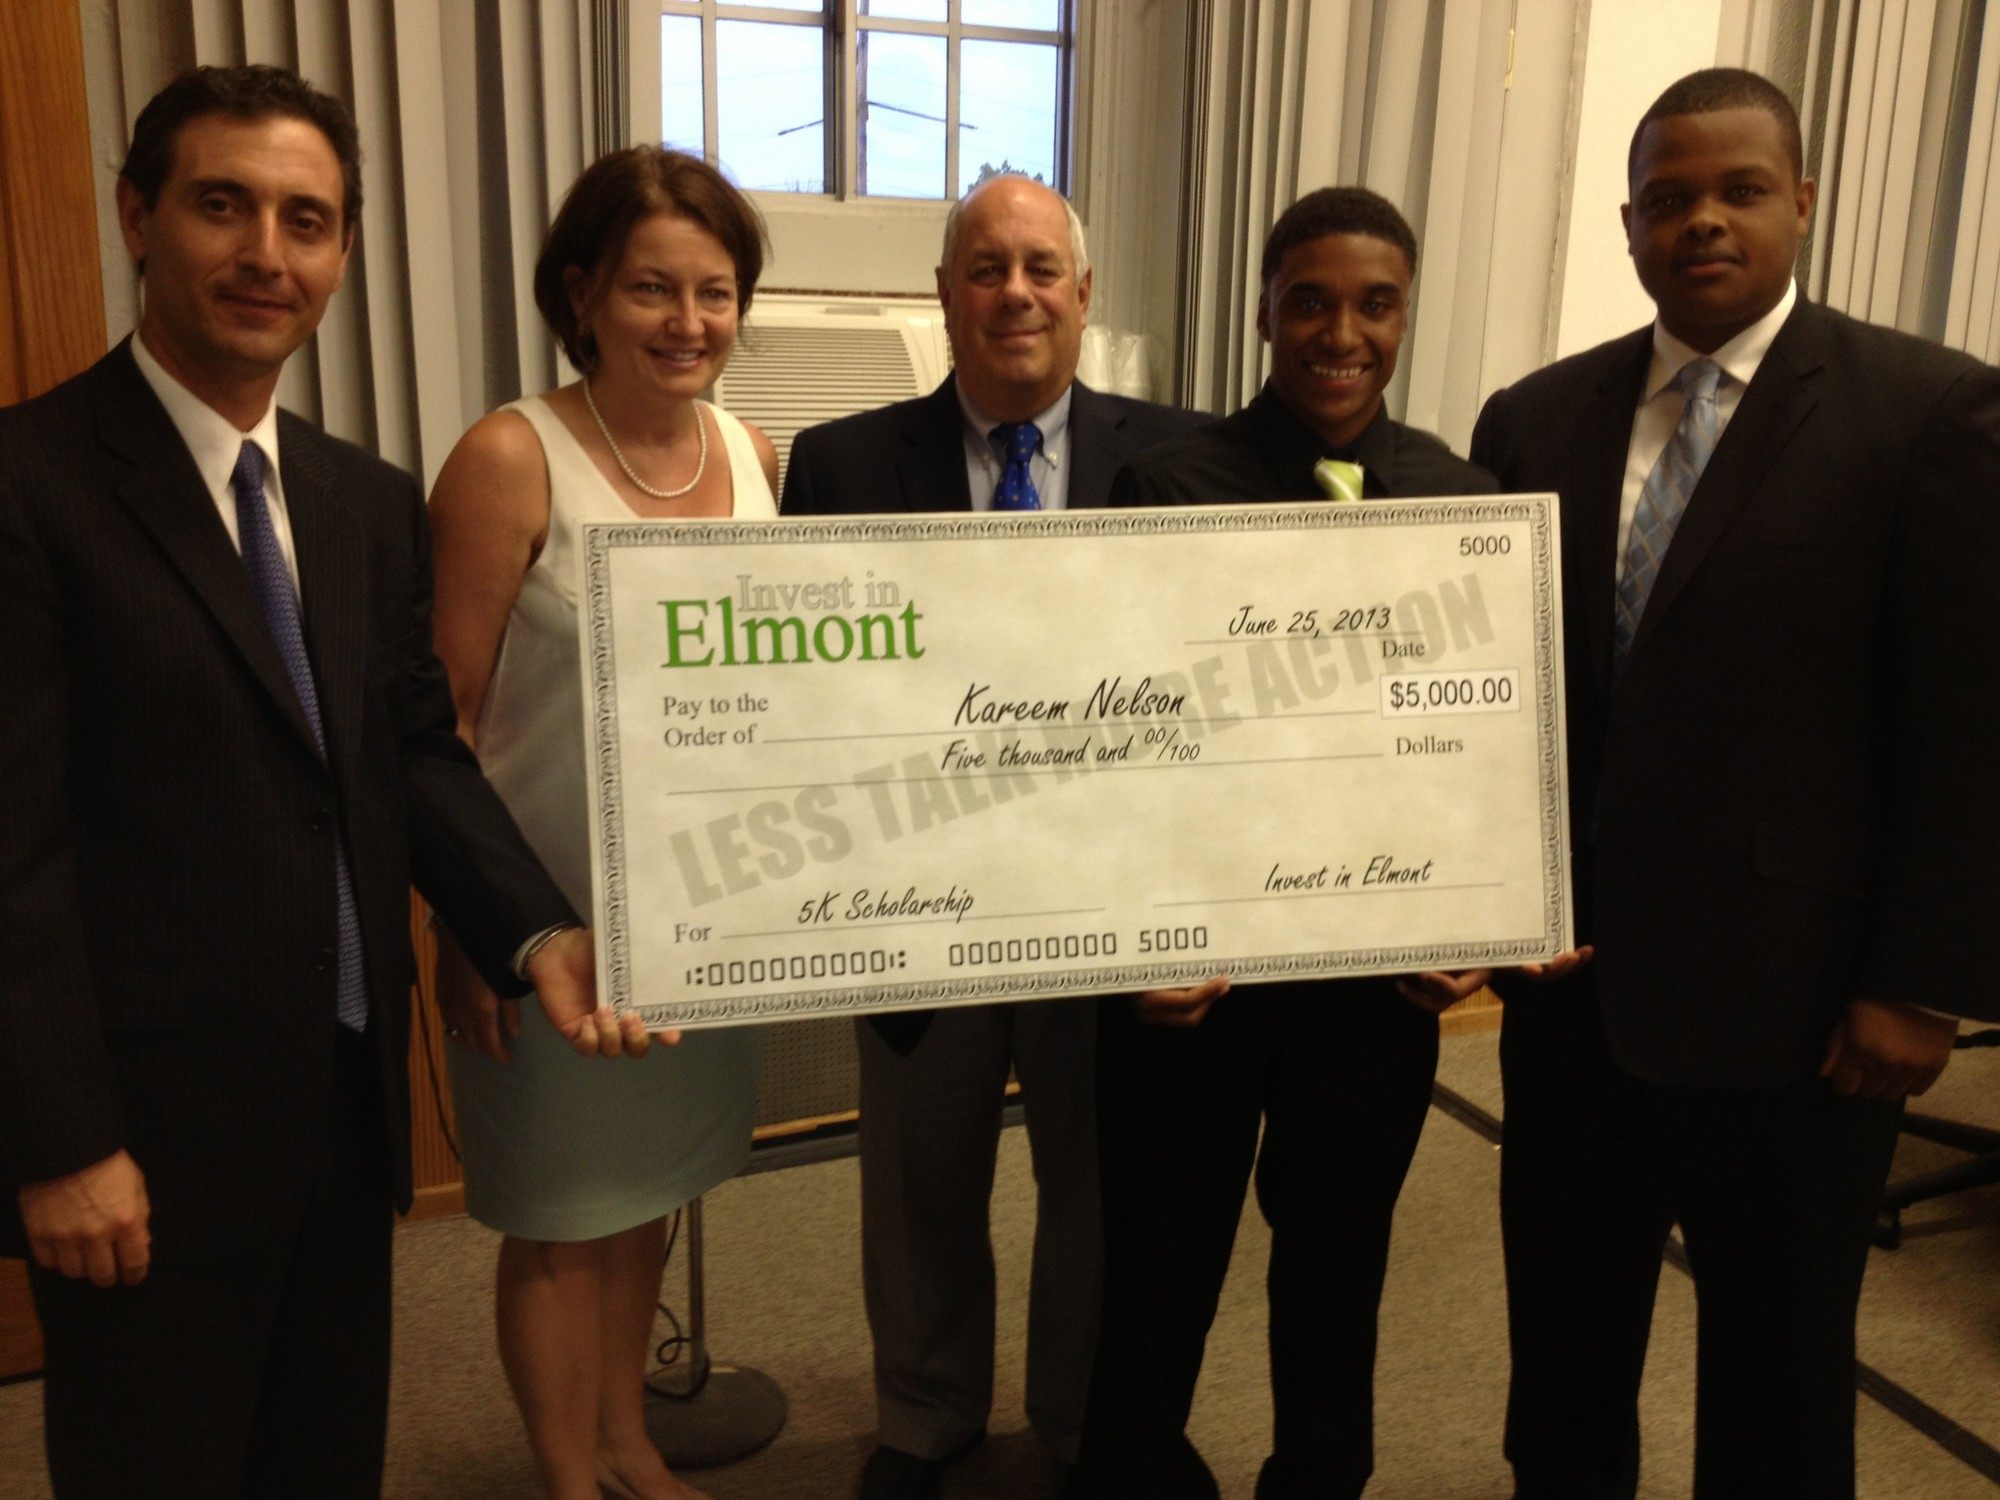 Invest in Elmont co-founder Muzzio Tallini, far left, Floral Park Memorial High School Principal Kathleen Sottile, Sewanhaka Schools Superintendent Dr. Ralph Ferrie, contest winner Kareem Nelson and Invest in Elmont co-founder Carl Achille after Nelson's business idea for Belmont Park was announced as the program's winner.